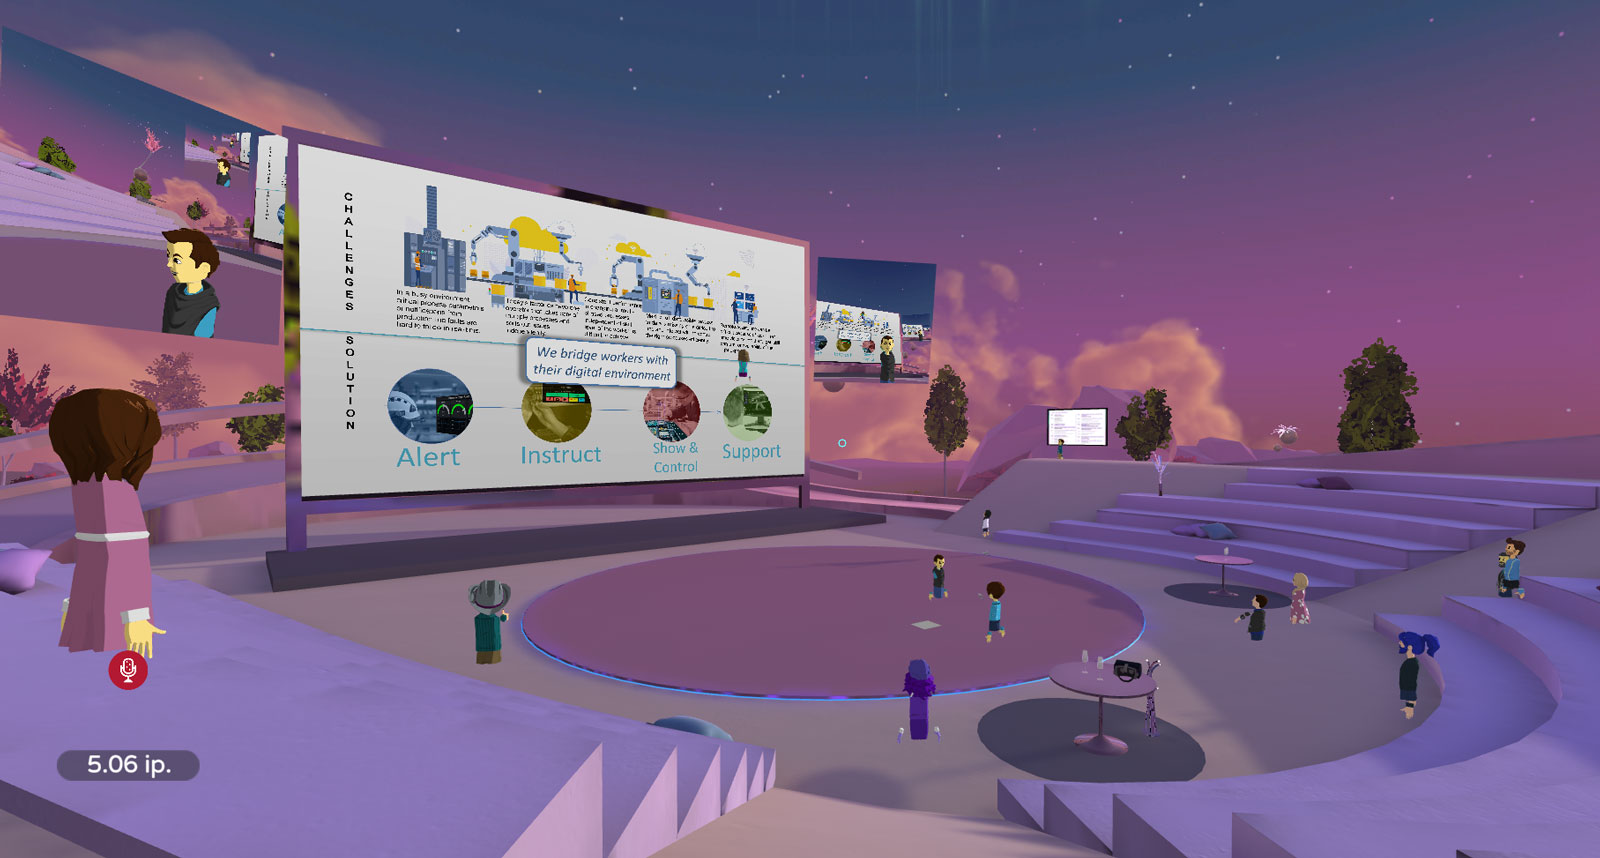 Lilac amphitheater in a virtual reality environment AltspaceVR. There is a big screen in the middle, with a presentation projected on it. Opens in lightbox.